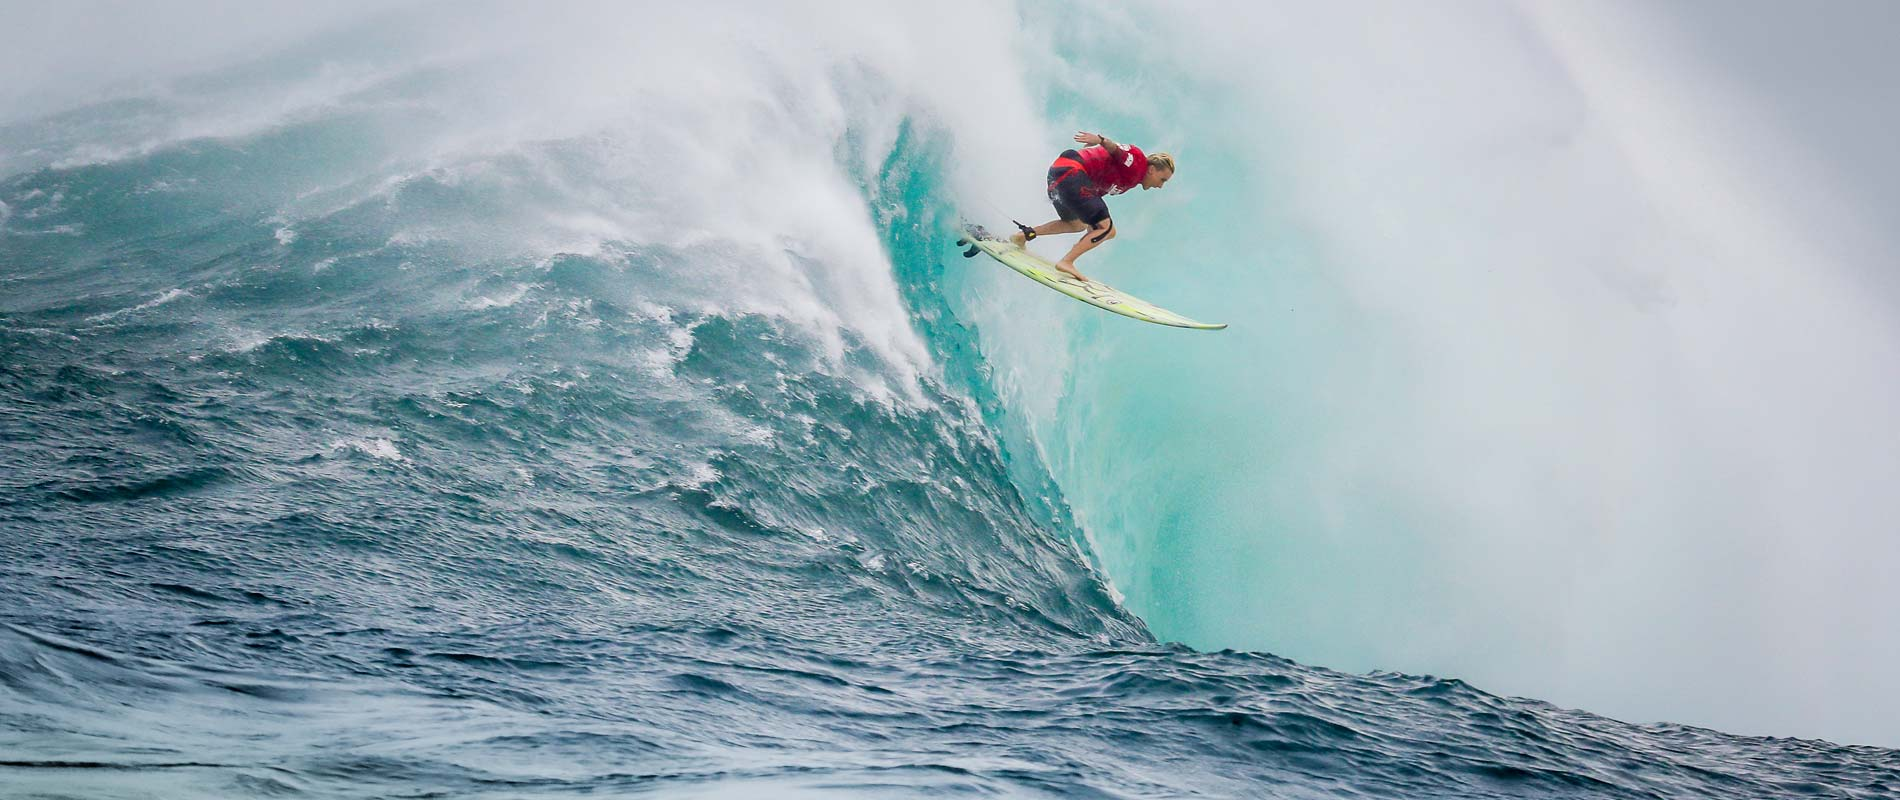 Keala Kennelly, Isurus Team Rider and Big Wave Surfer at Jaws